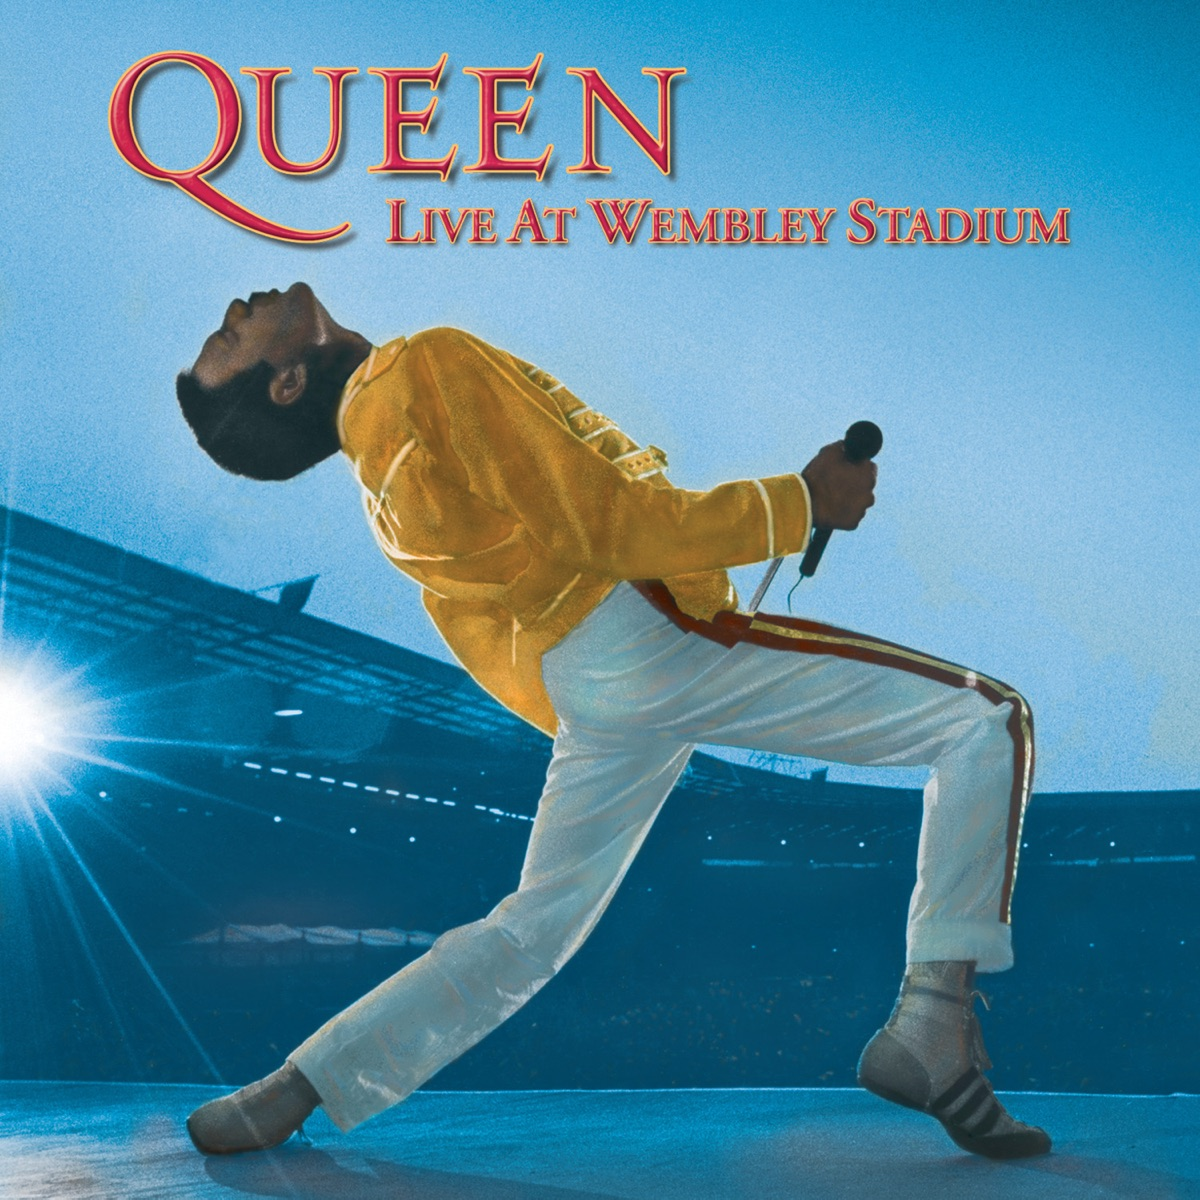 Live At Wembley Stadium Queen CD cover